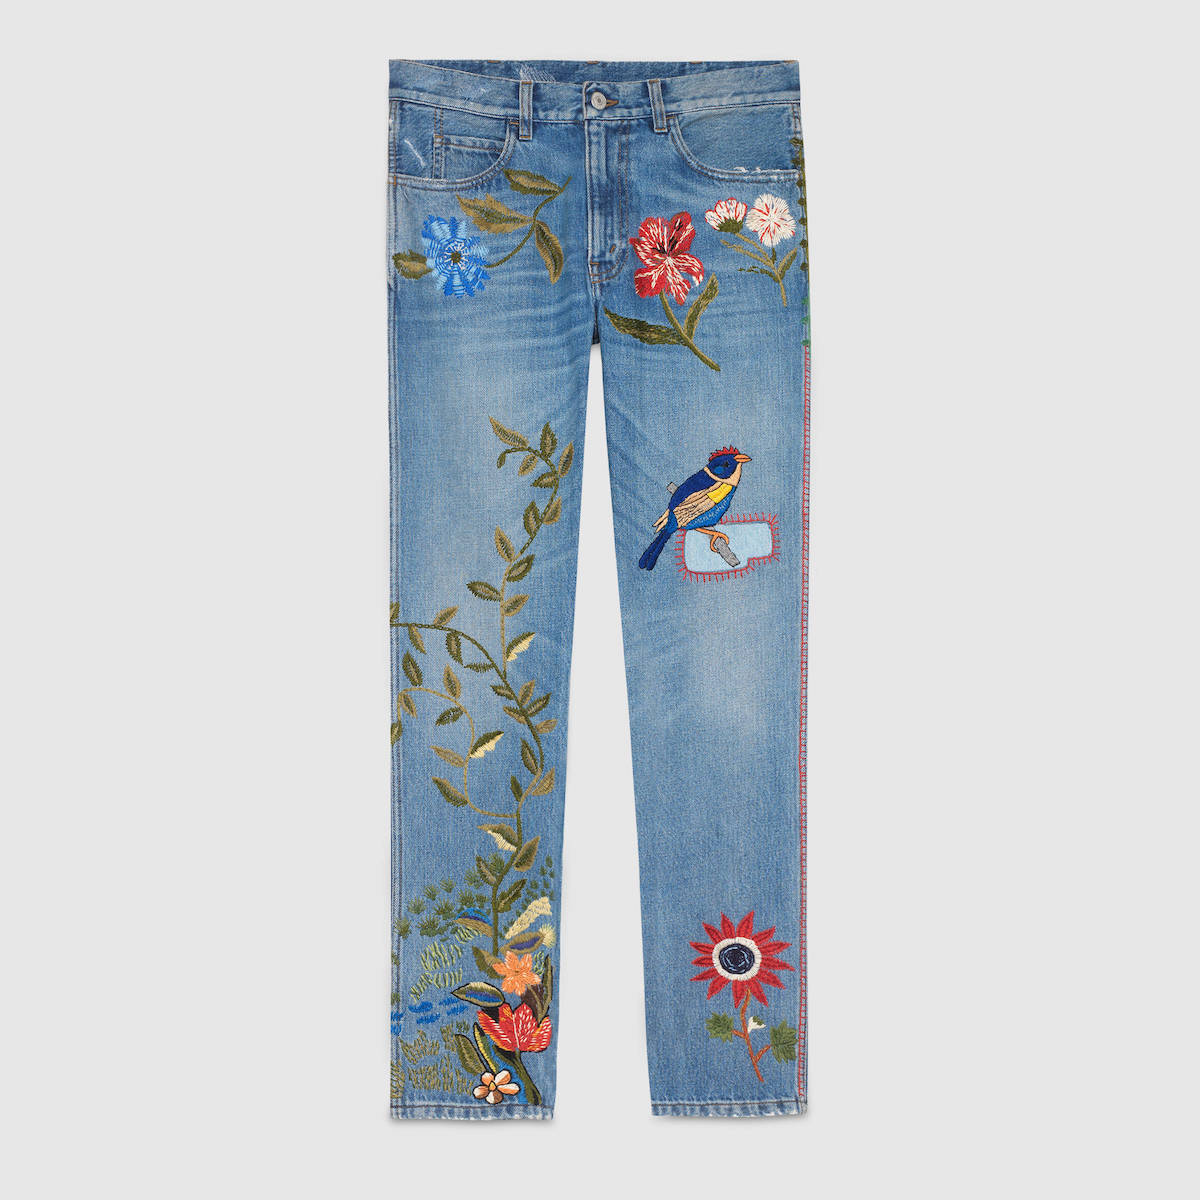 gucci-light-embroidered-denim-jeans